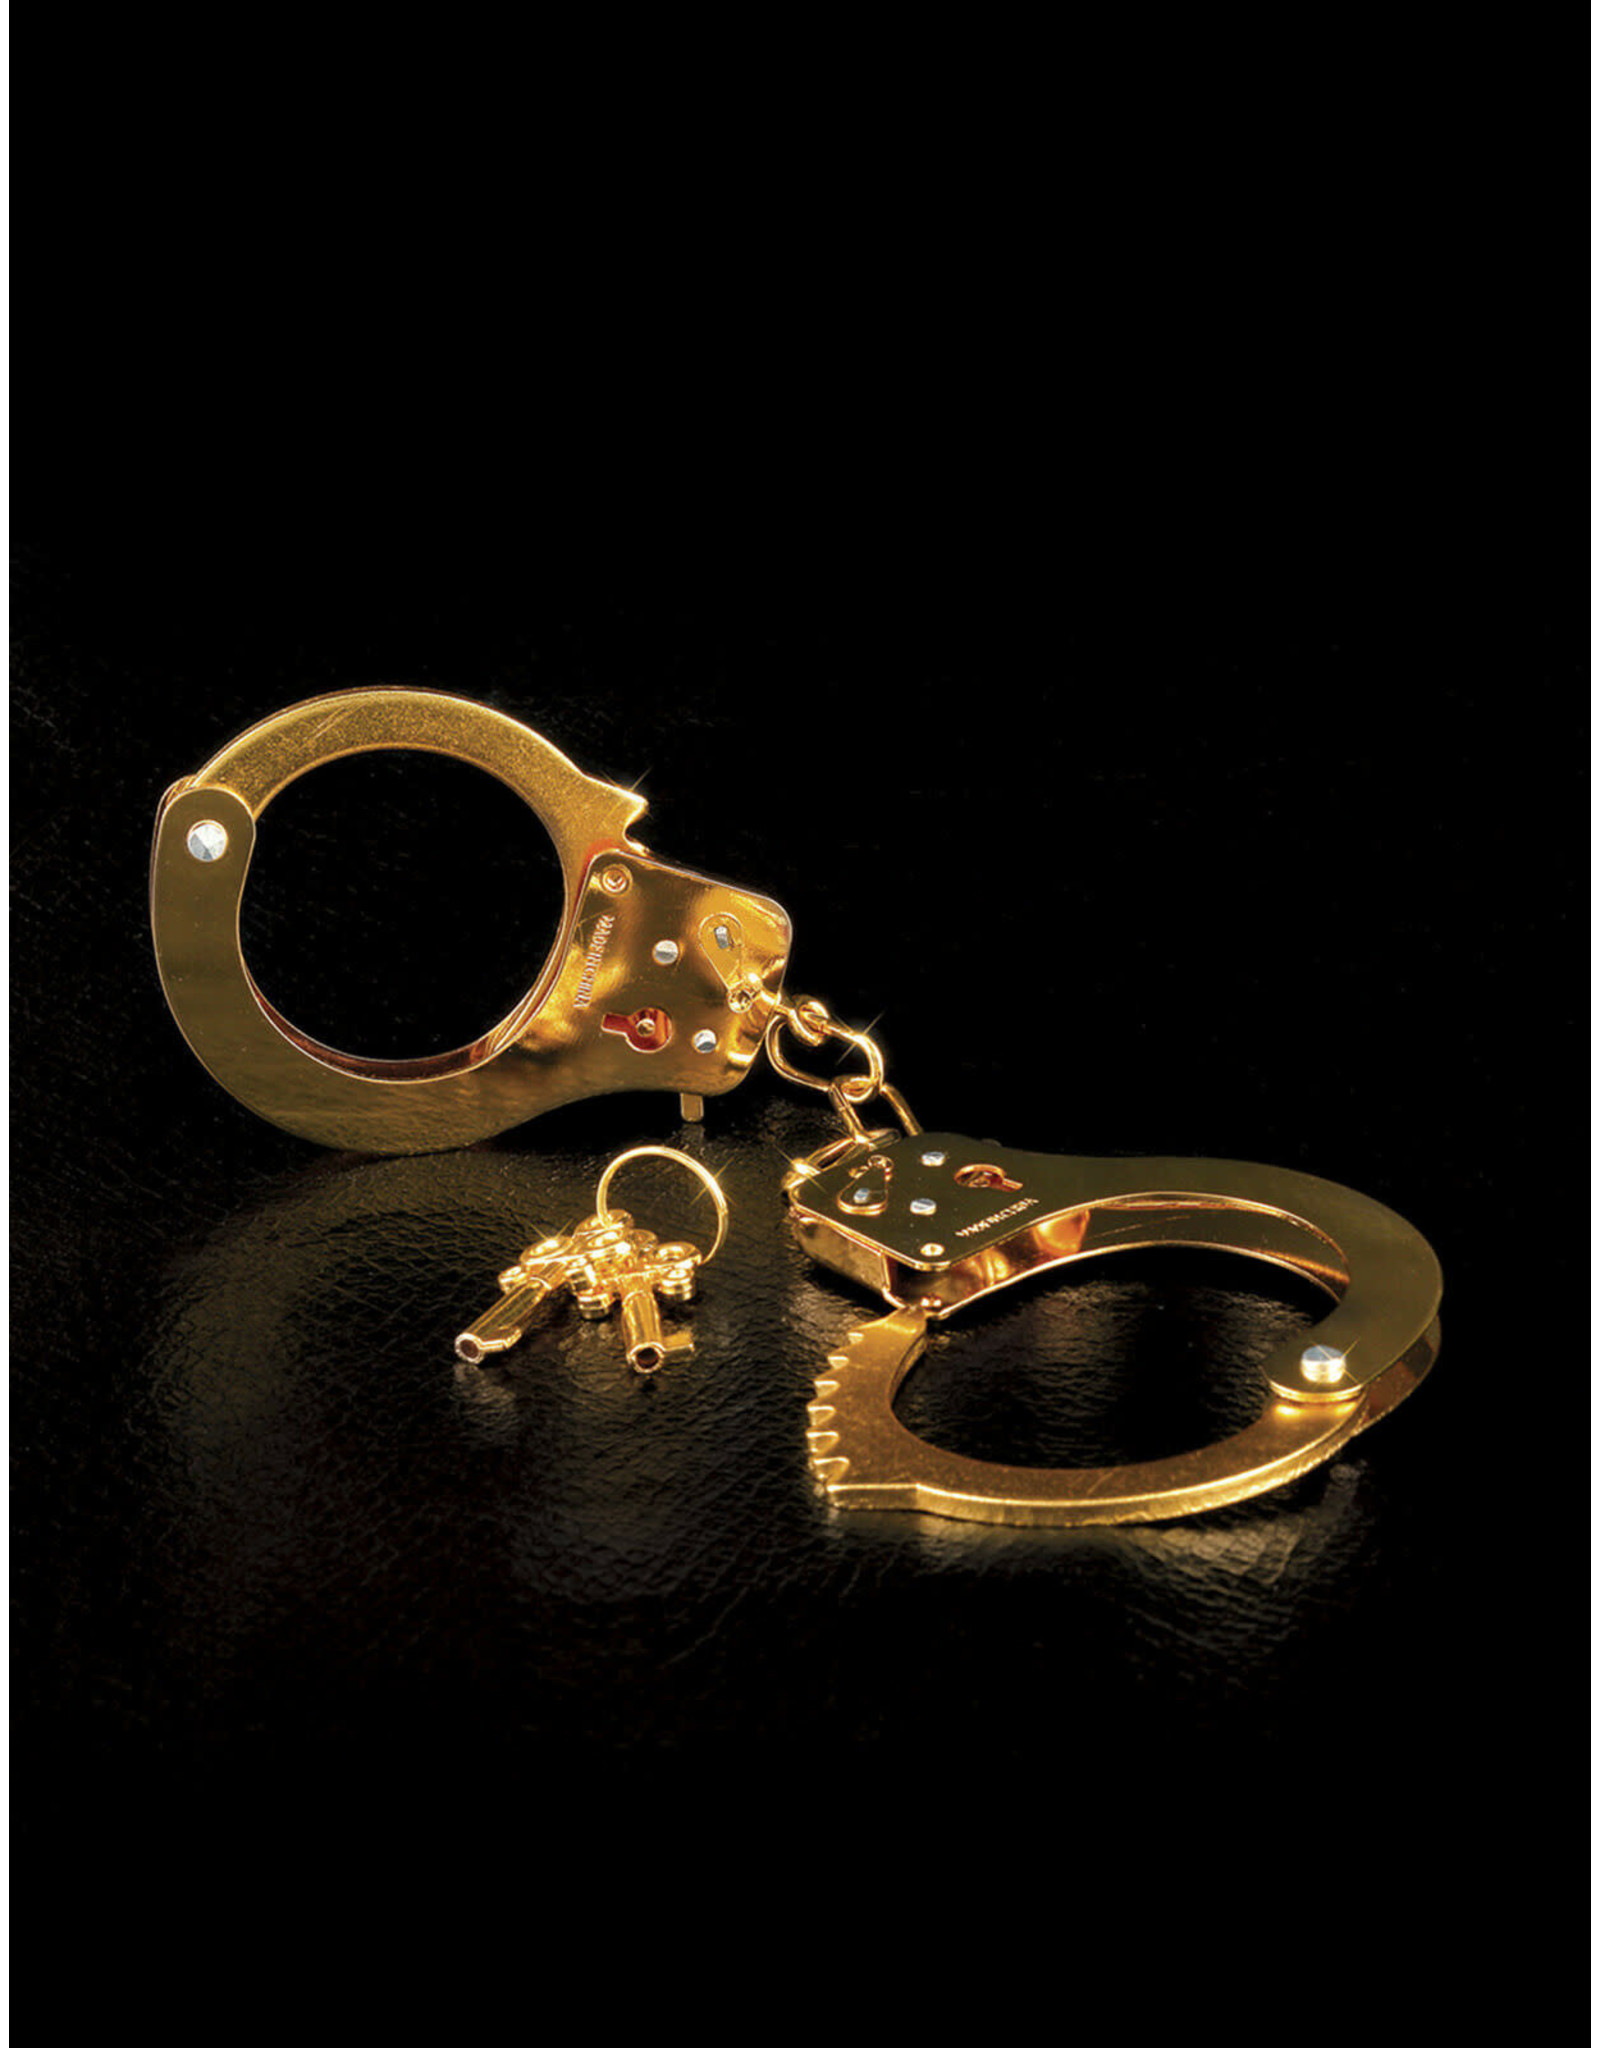 FETISH FANTASY - METAL CUFFS - GOLD